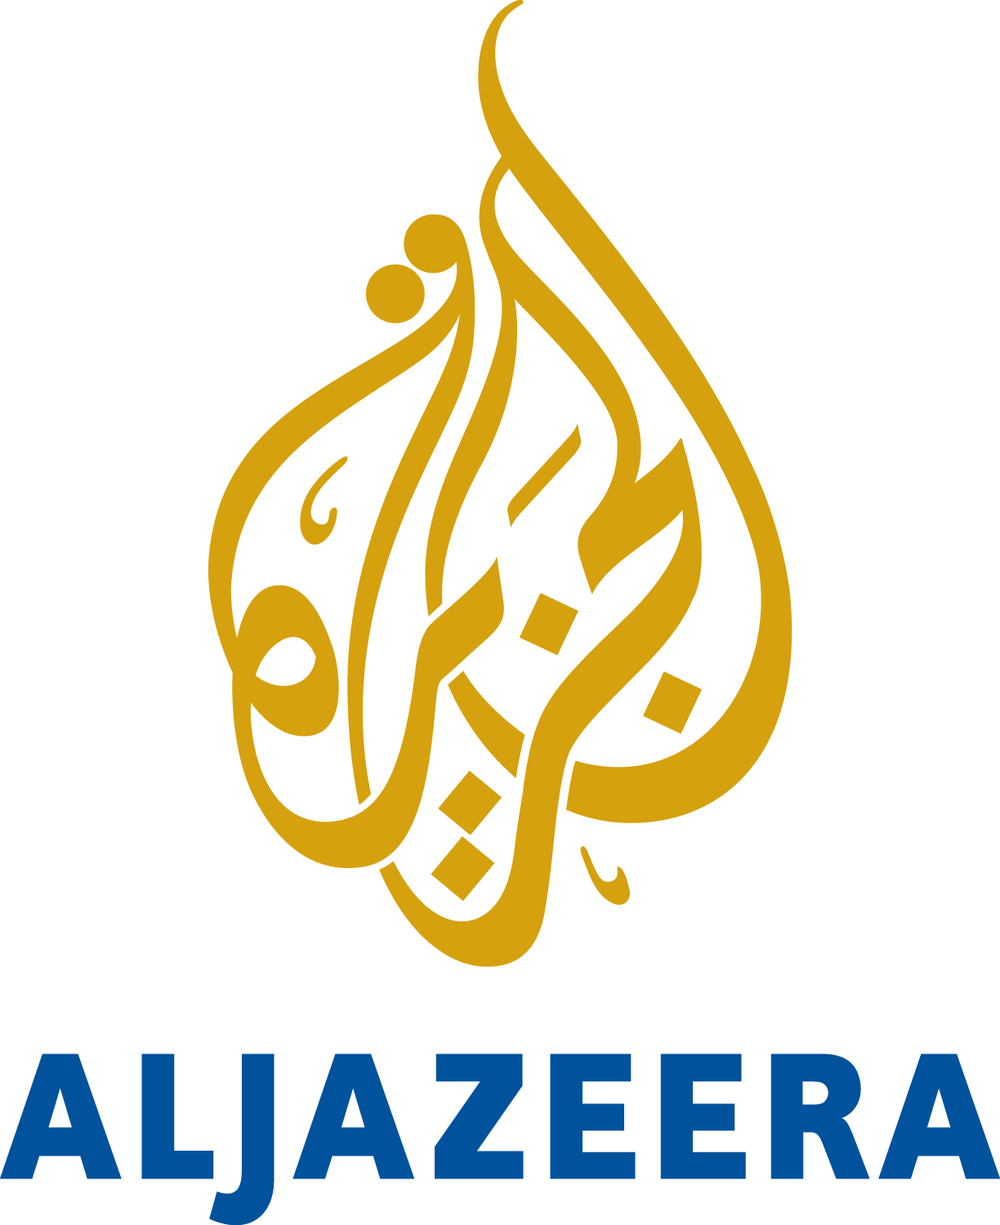 aljazeera-english-logo.jpeg